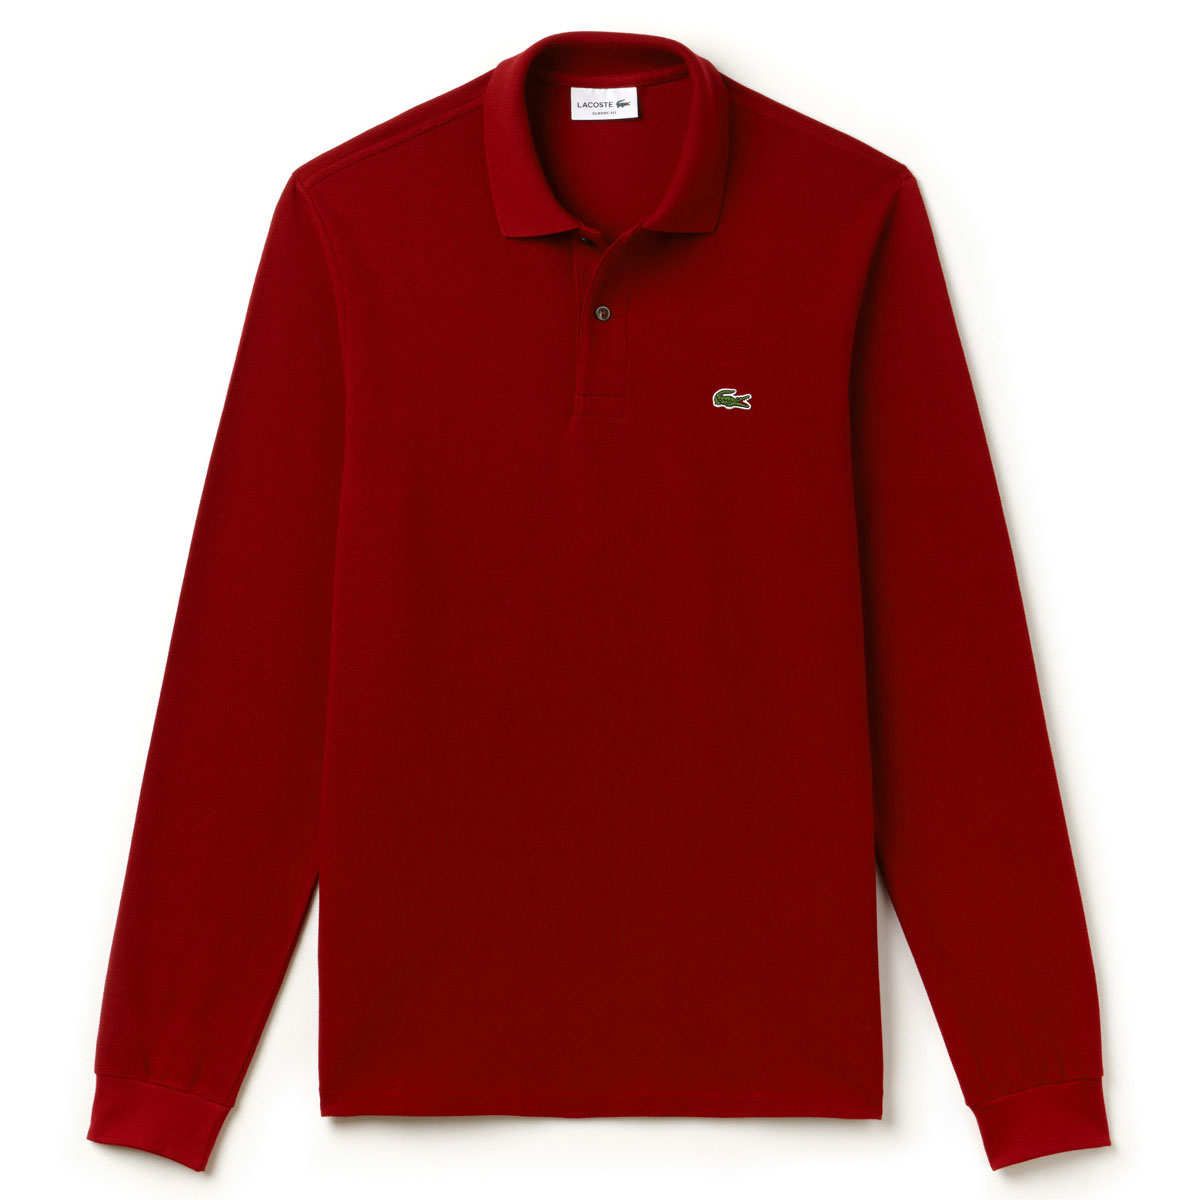 44edcb96289 Lacoste Mens 2019 Classic Cotton Long Sleeve L1312 Polo Shirt